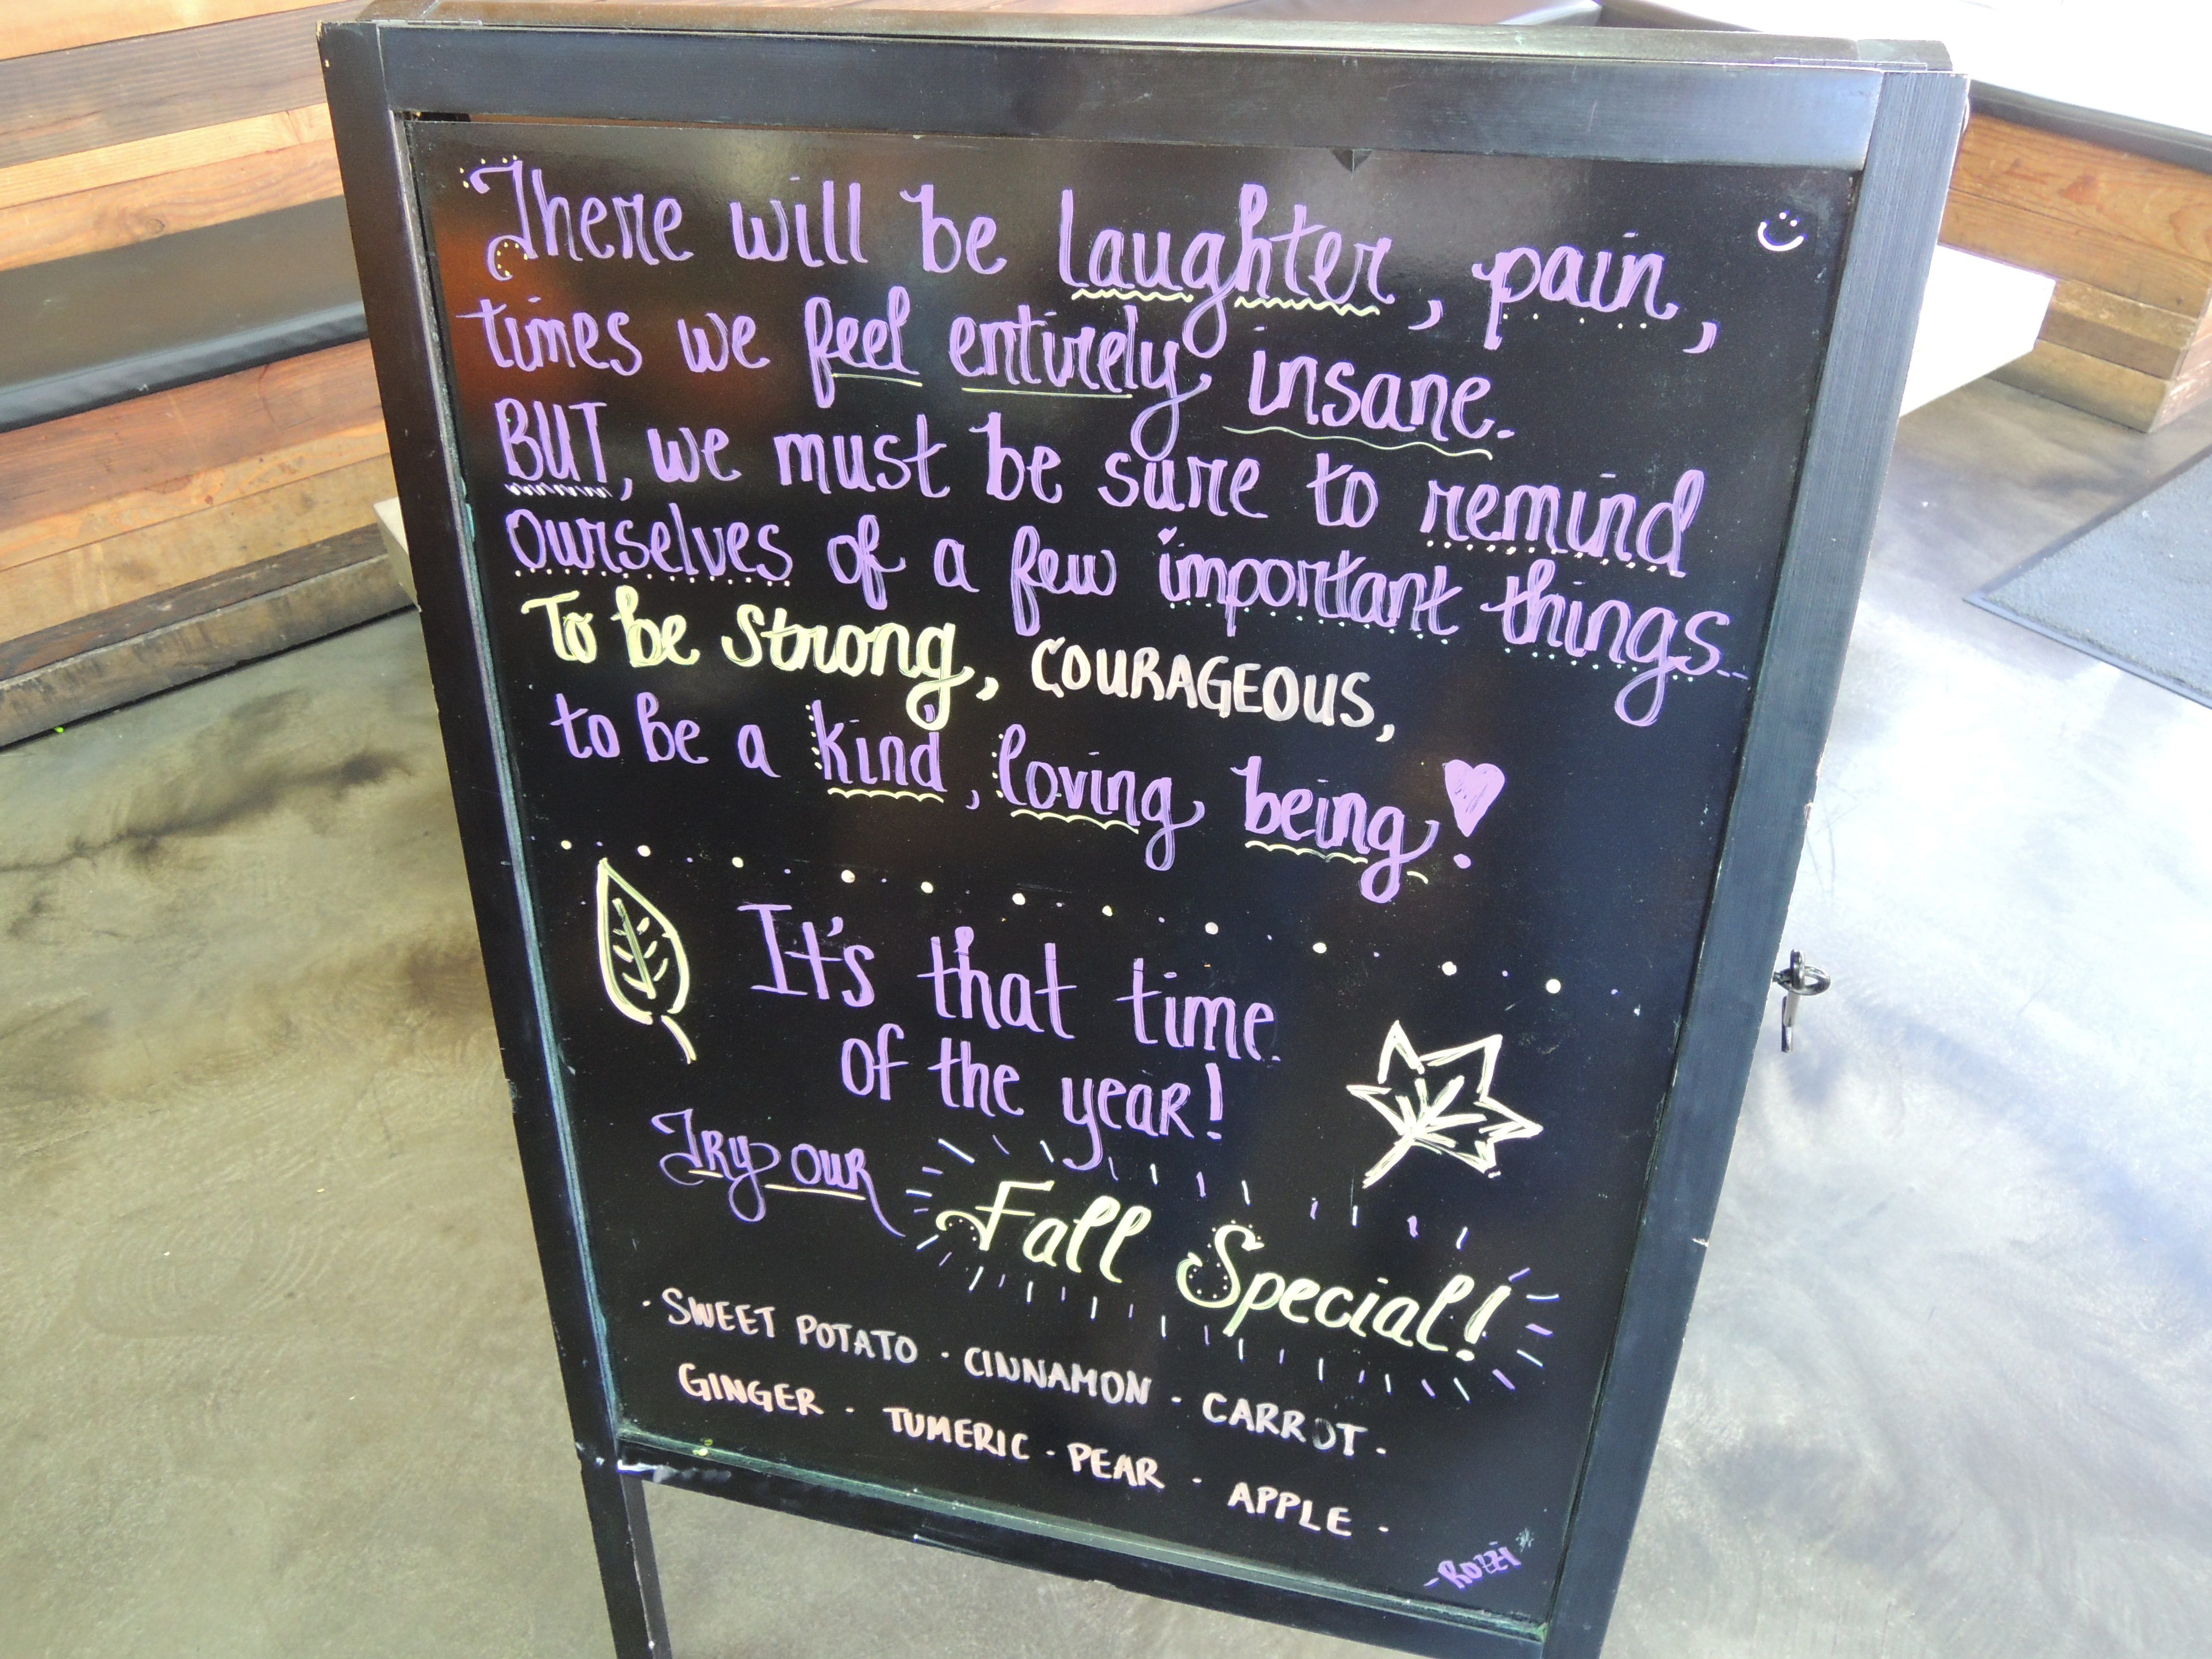 Inspirational  message at Roots Juice Bar.